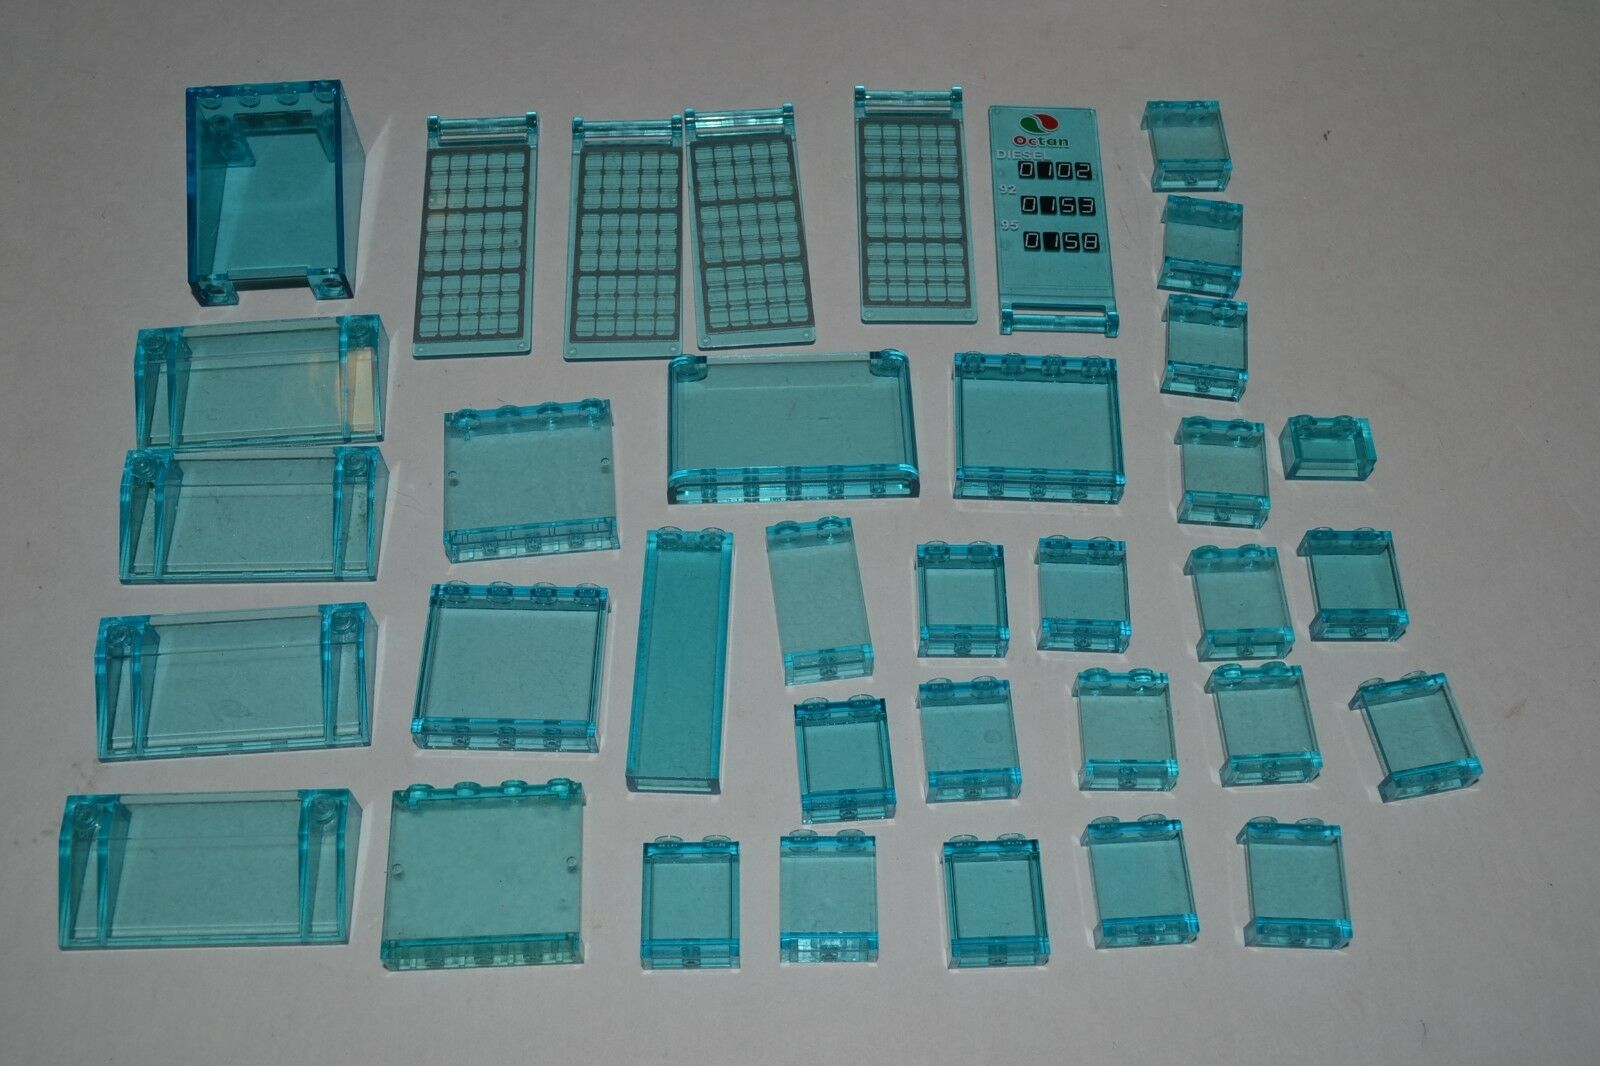 Lego Lot of Transparent Trans-blu Panels Walls Parts Windows ADGP